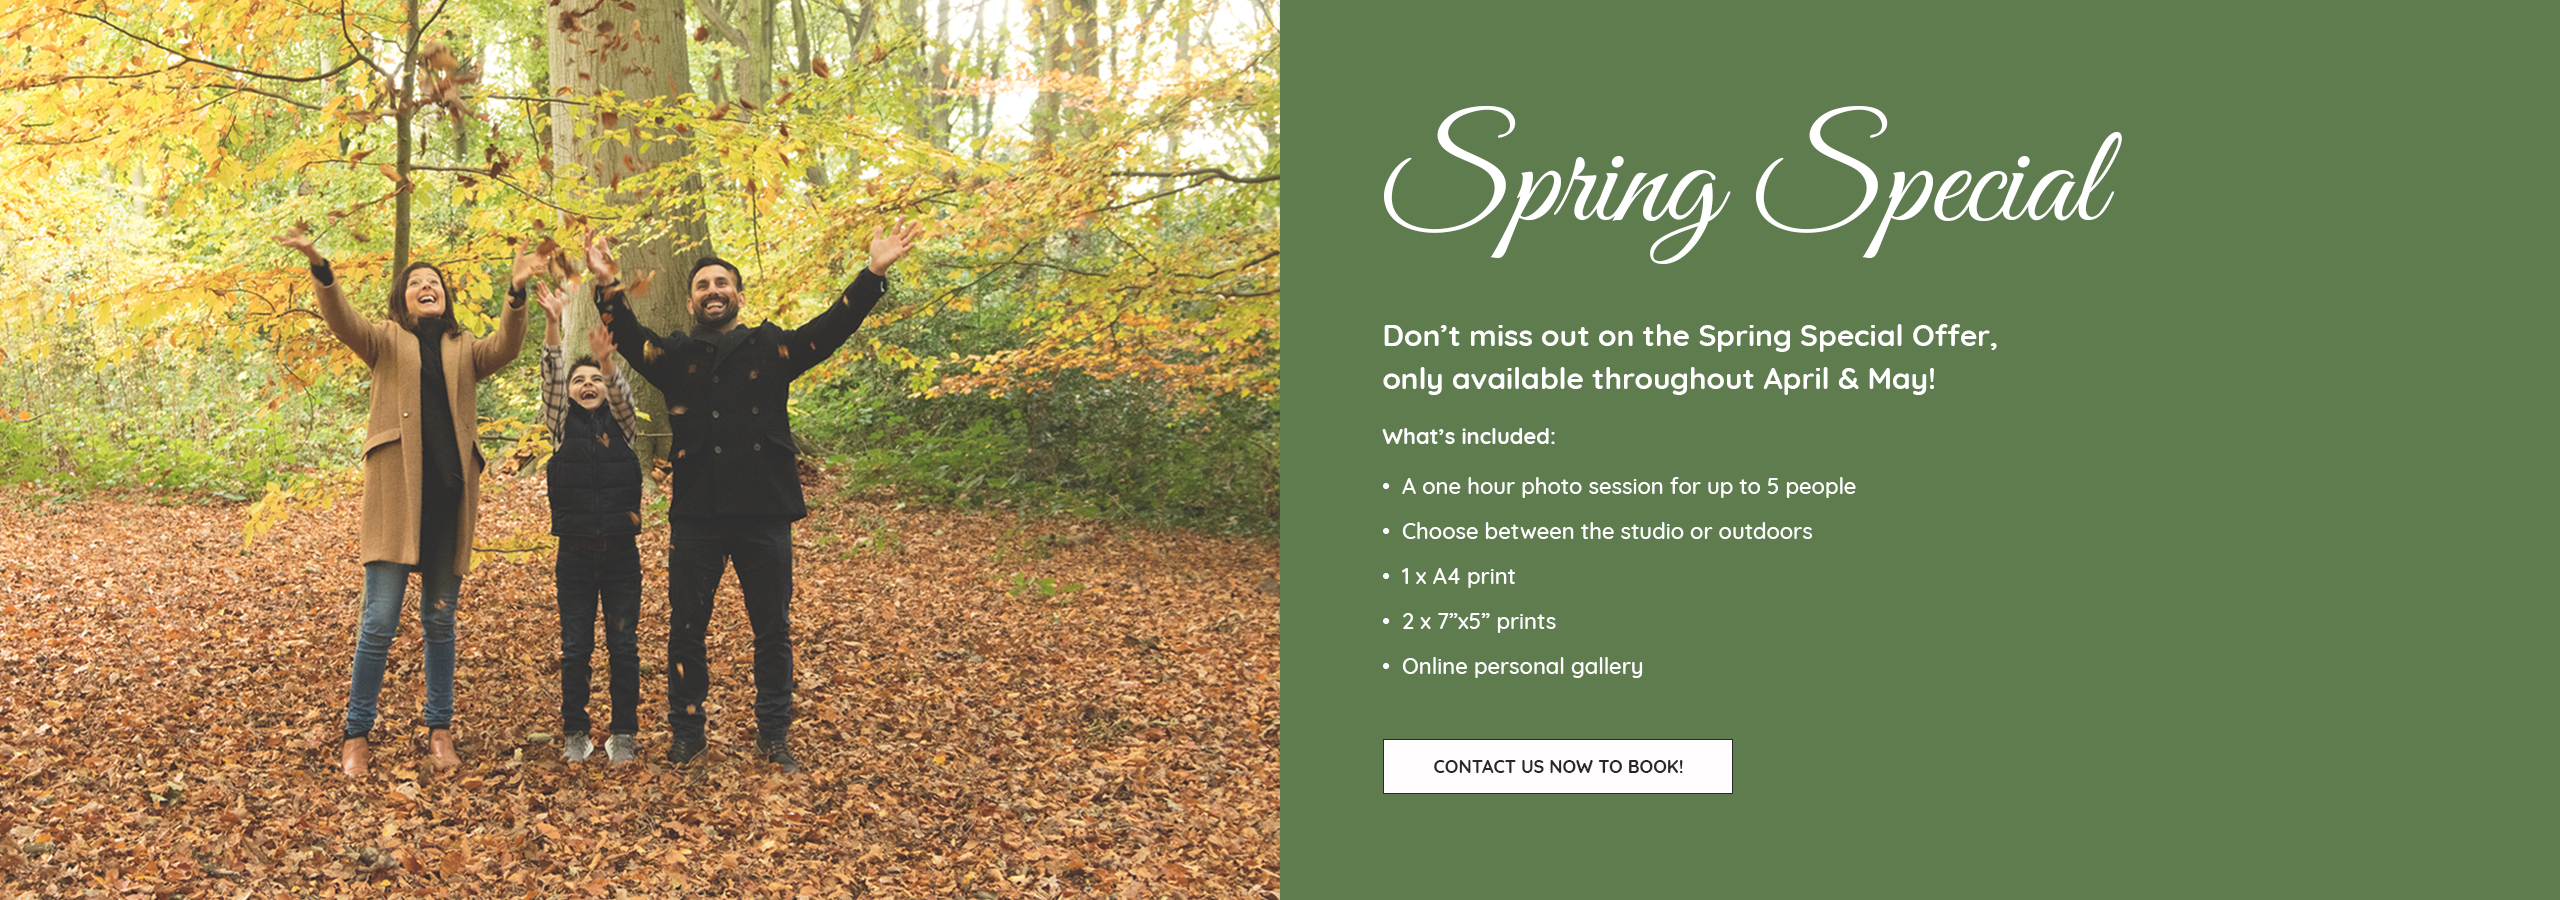 pure photography spring special offer new